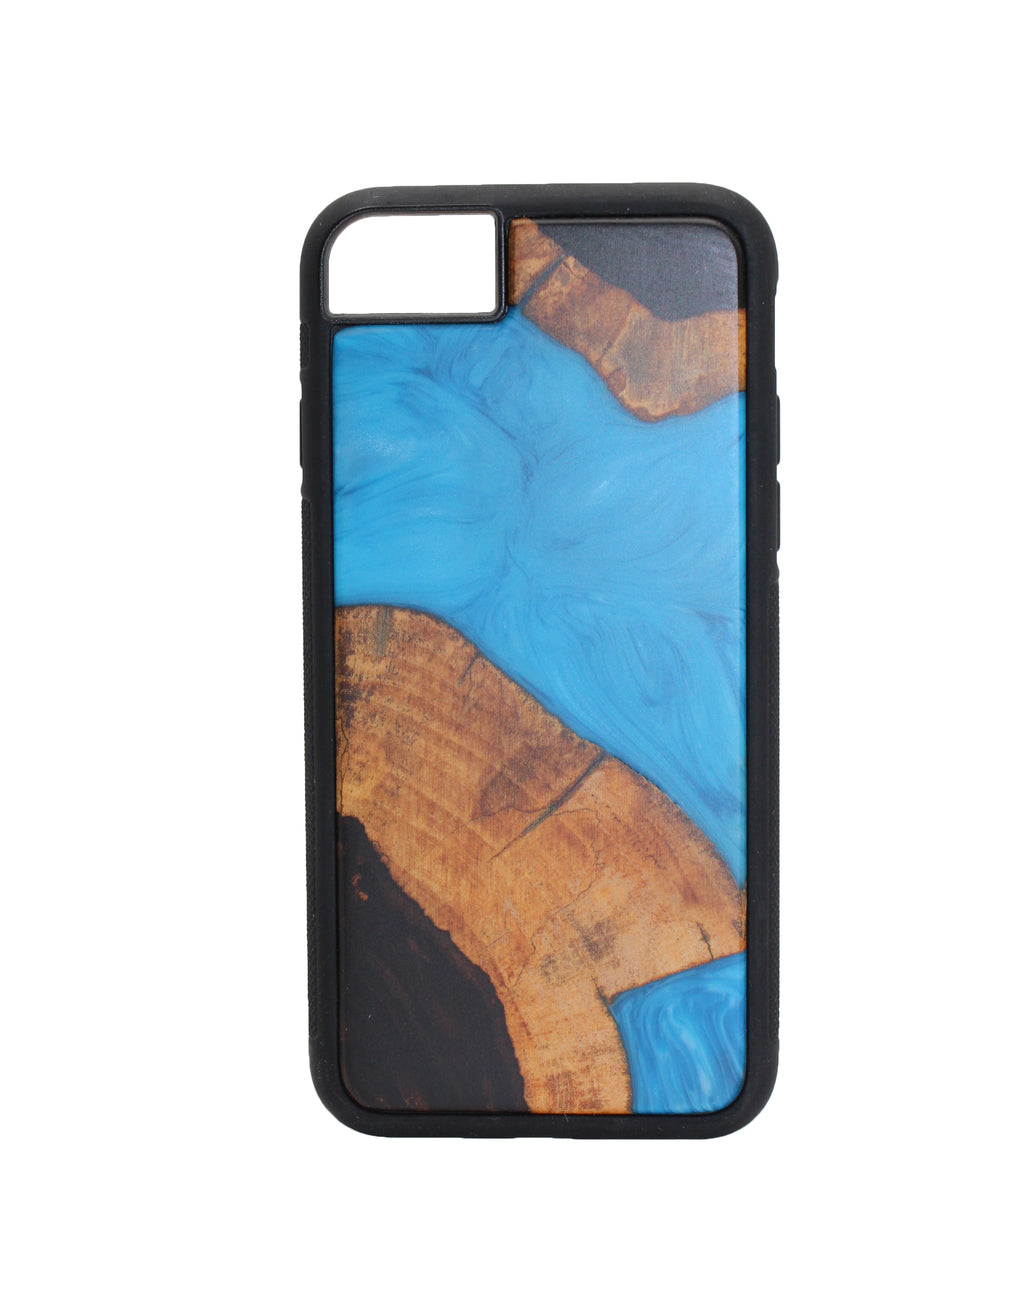 LiveECO Wood and Resin iPhone 7/8 - Eco-friendly Phone Cases all iPhone Models Available - 100% recyclable materials - Eco-friendly protection for Apple iPhone - Fully certified Guarantee